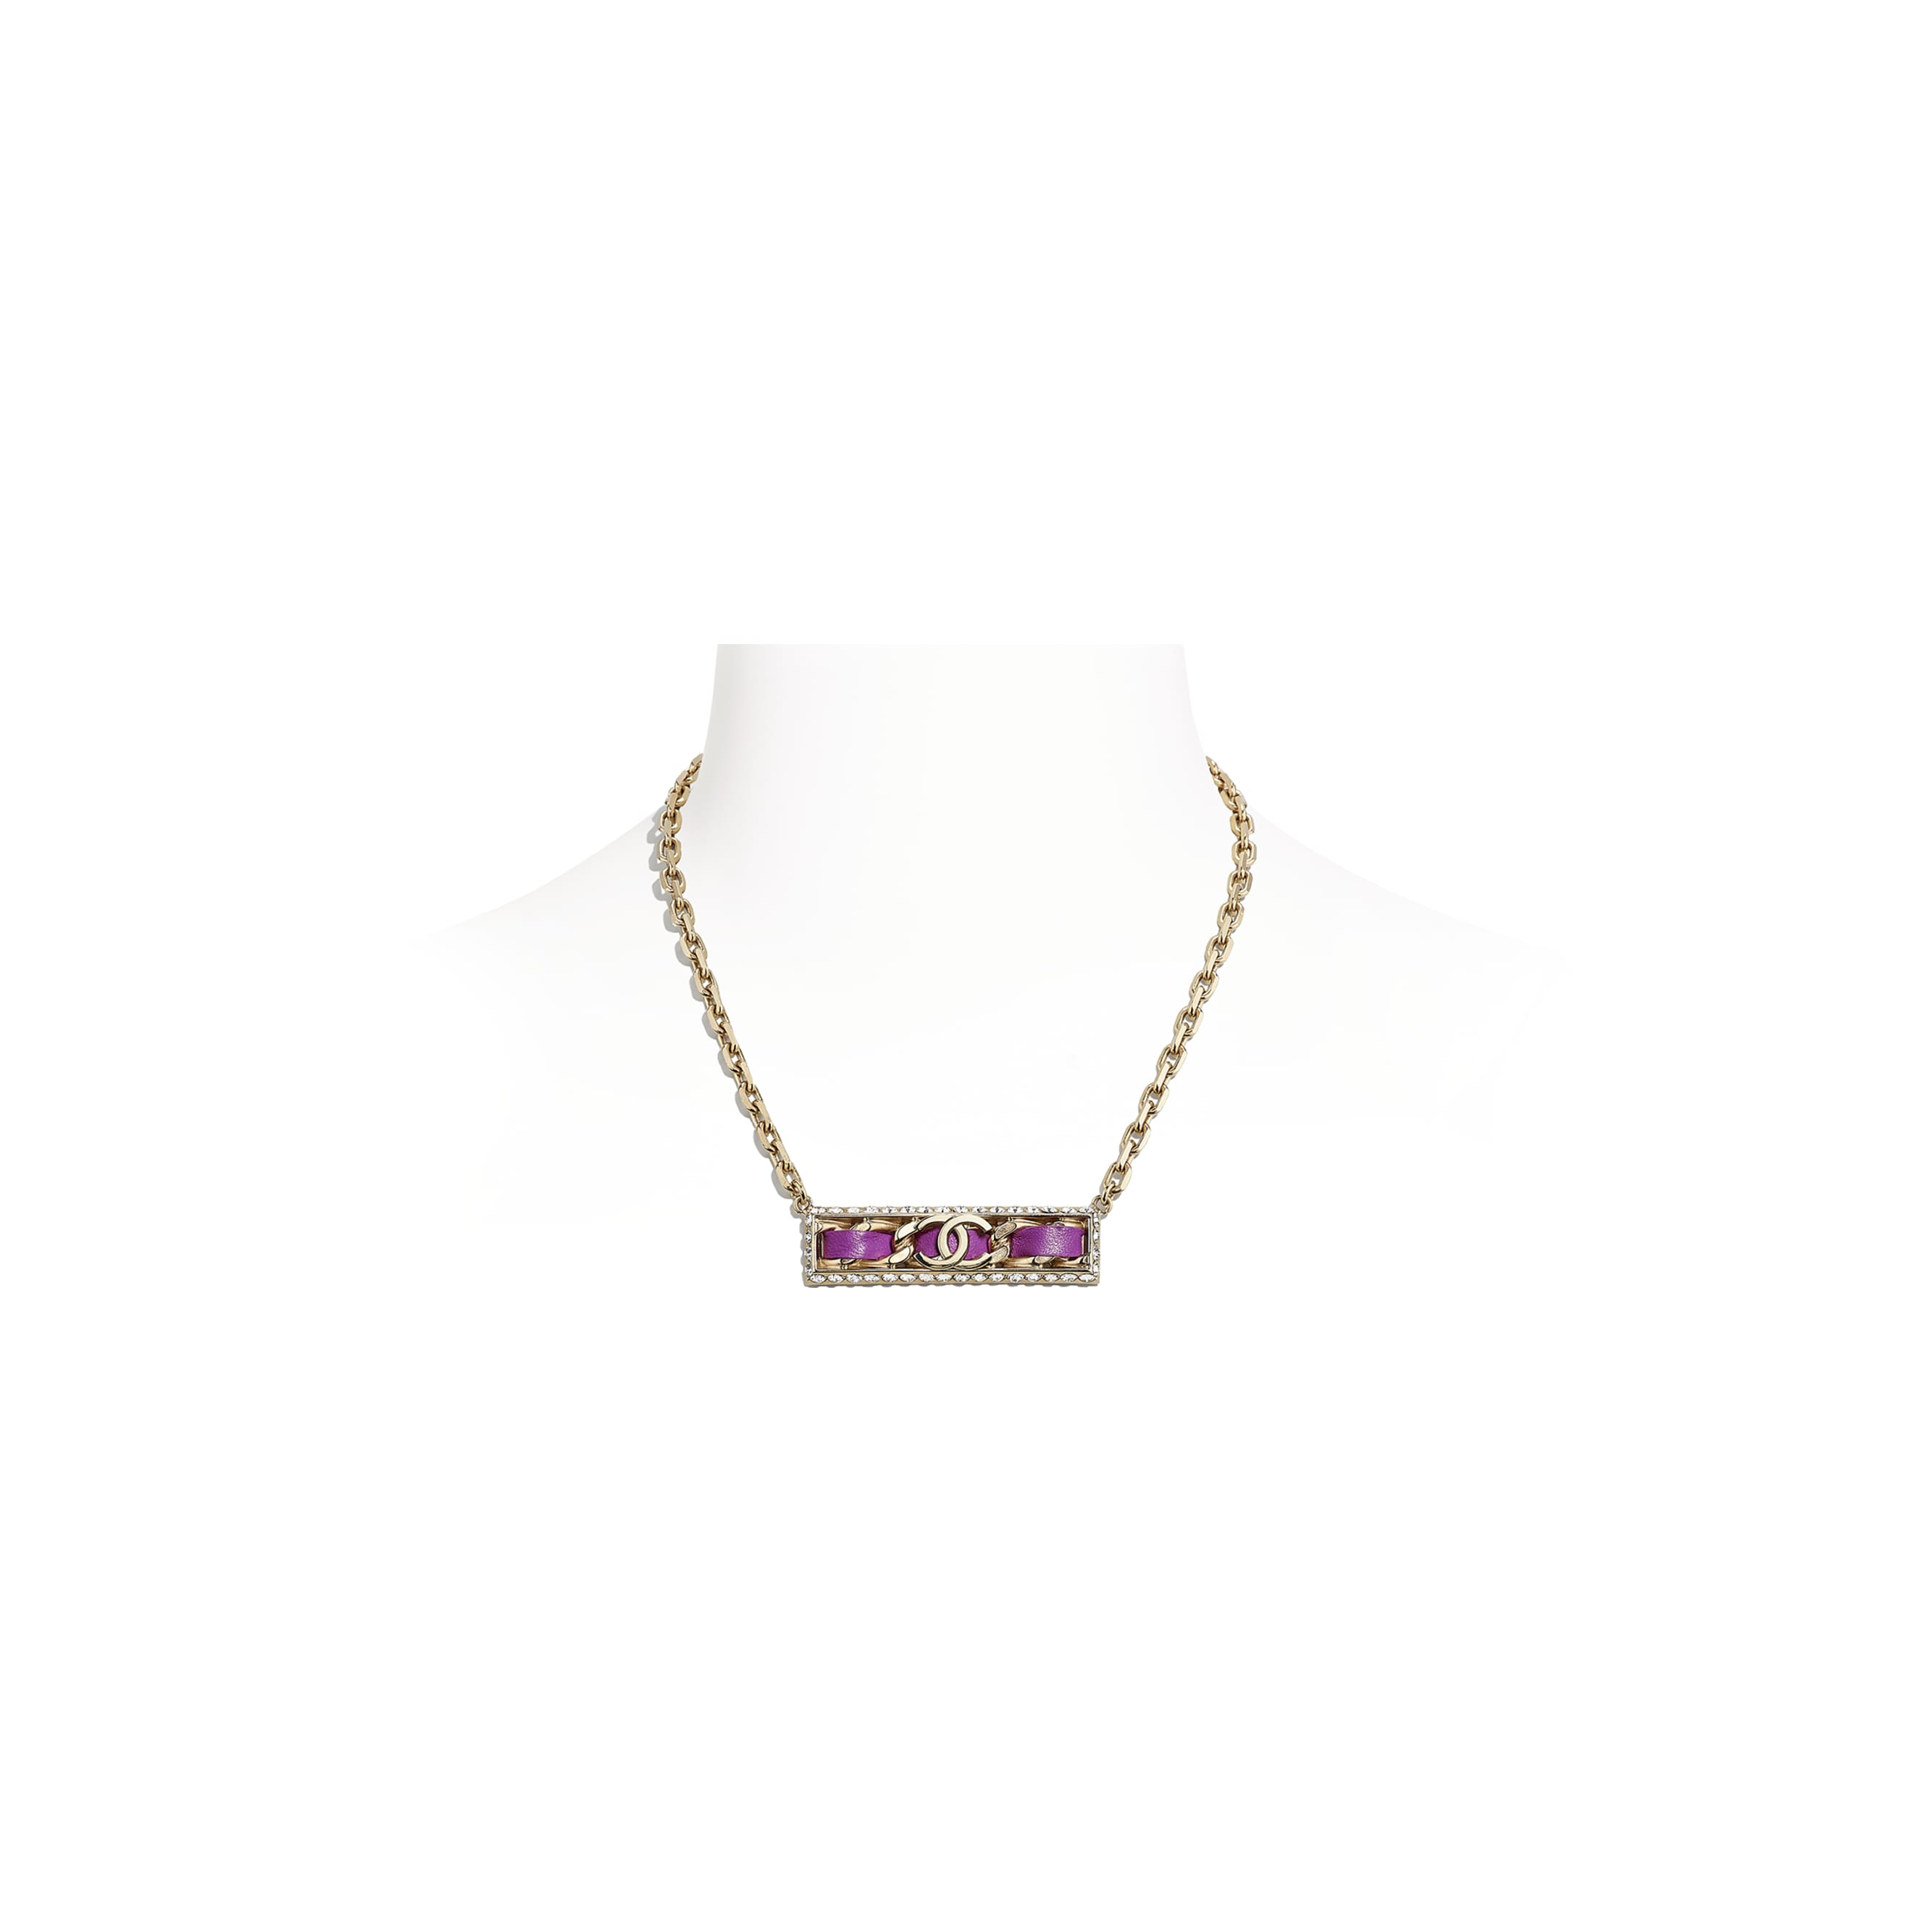 Necklace - Gold, Fuchsia & Crystal - Metal, Lambskin & Strass - CHANEL - Default view - see standard sized version